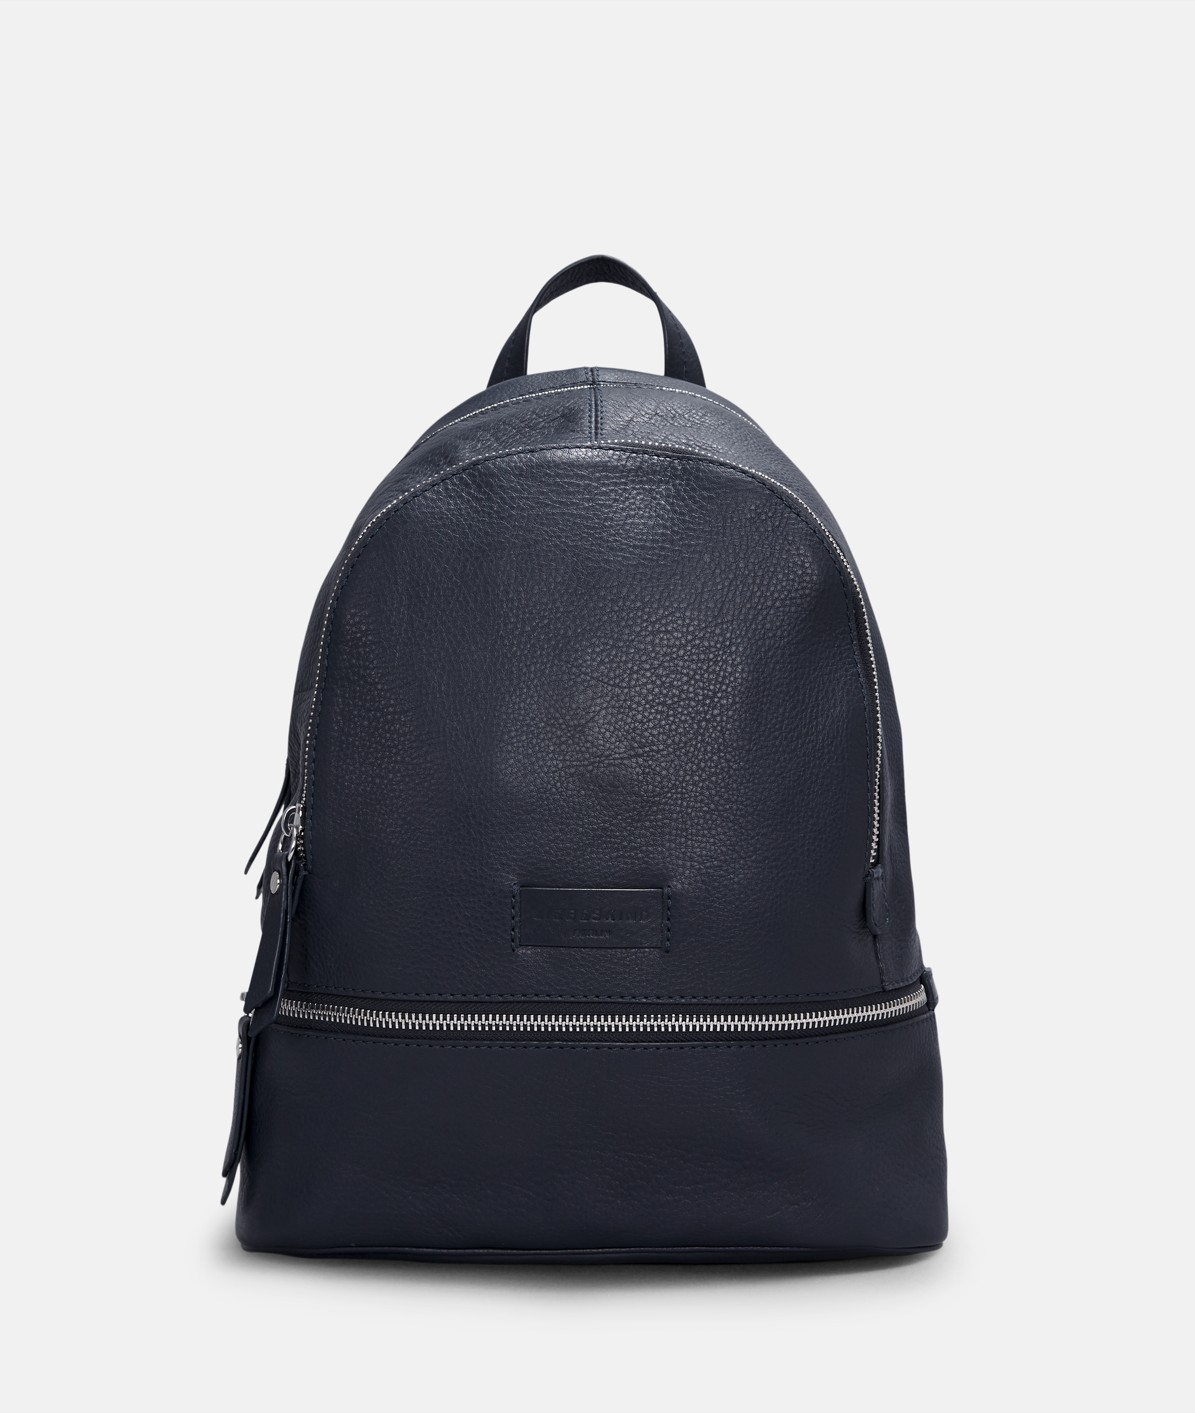 Soft leather rucksack from liebeskind